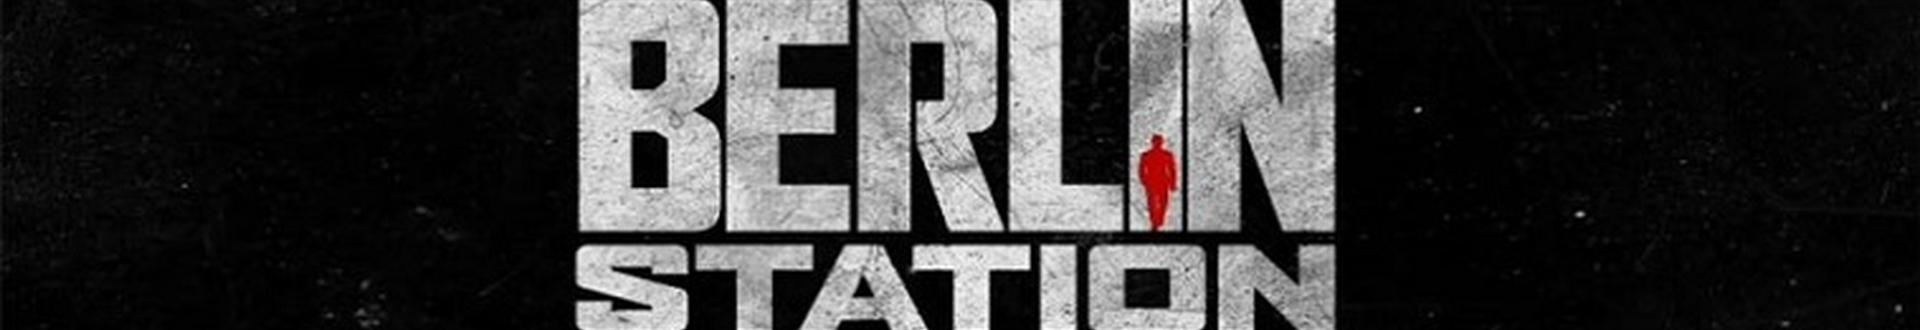 Image illustrative de Berlin Station